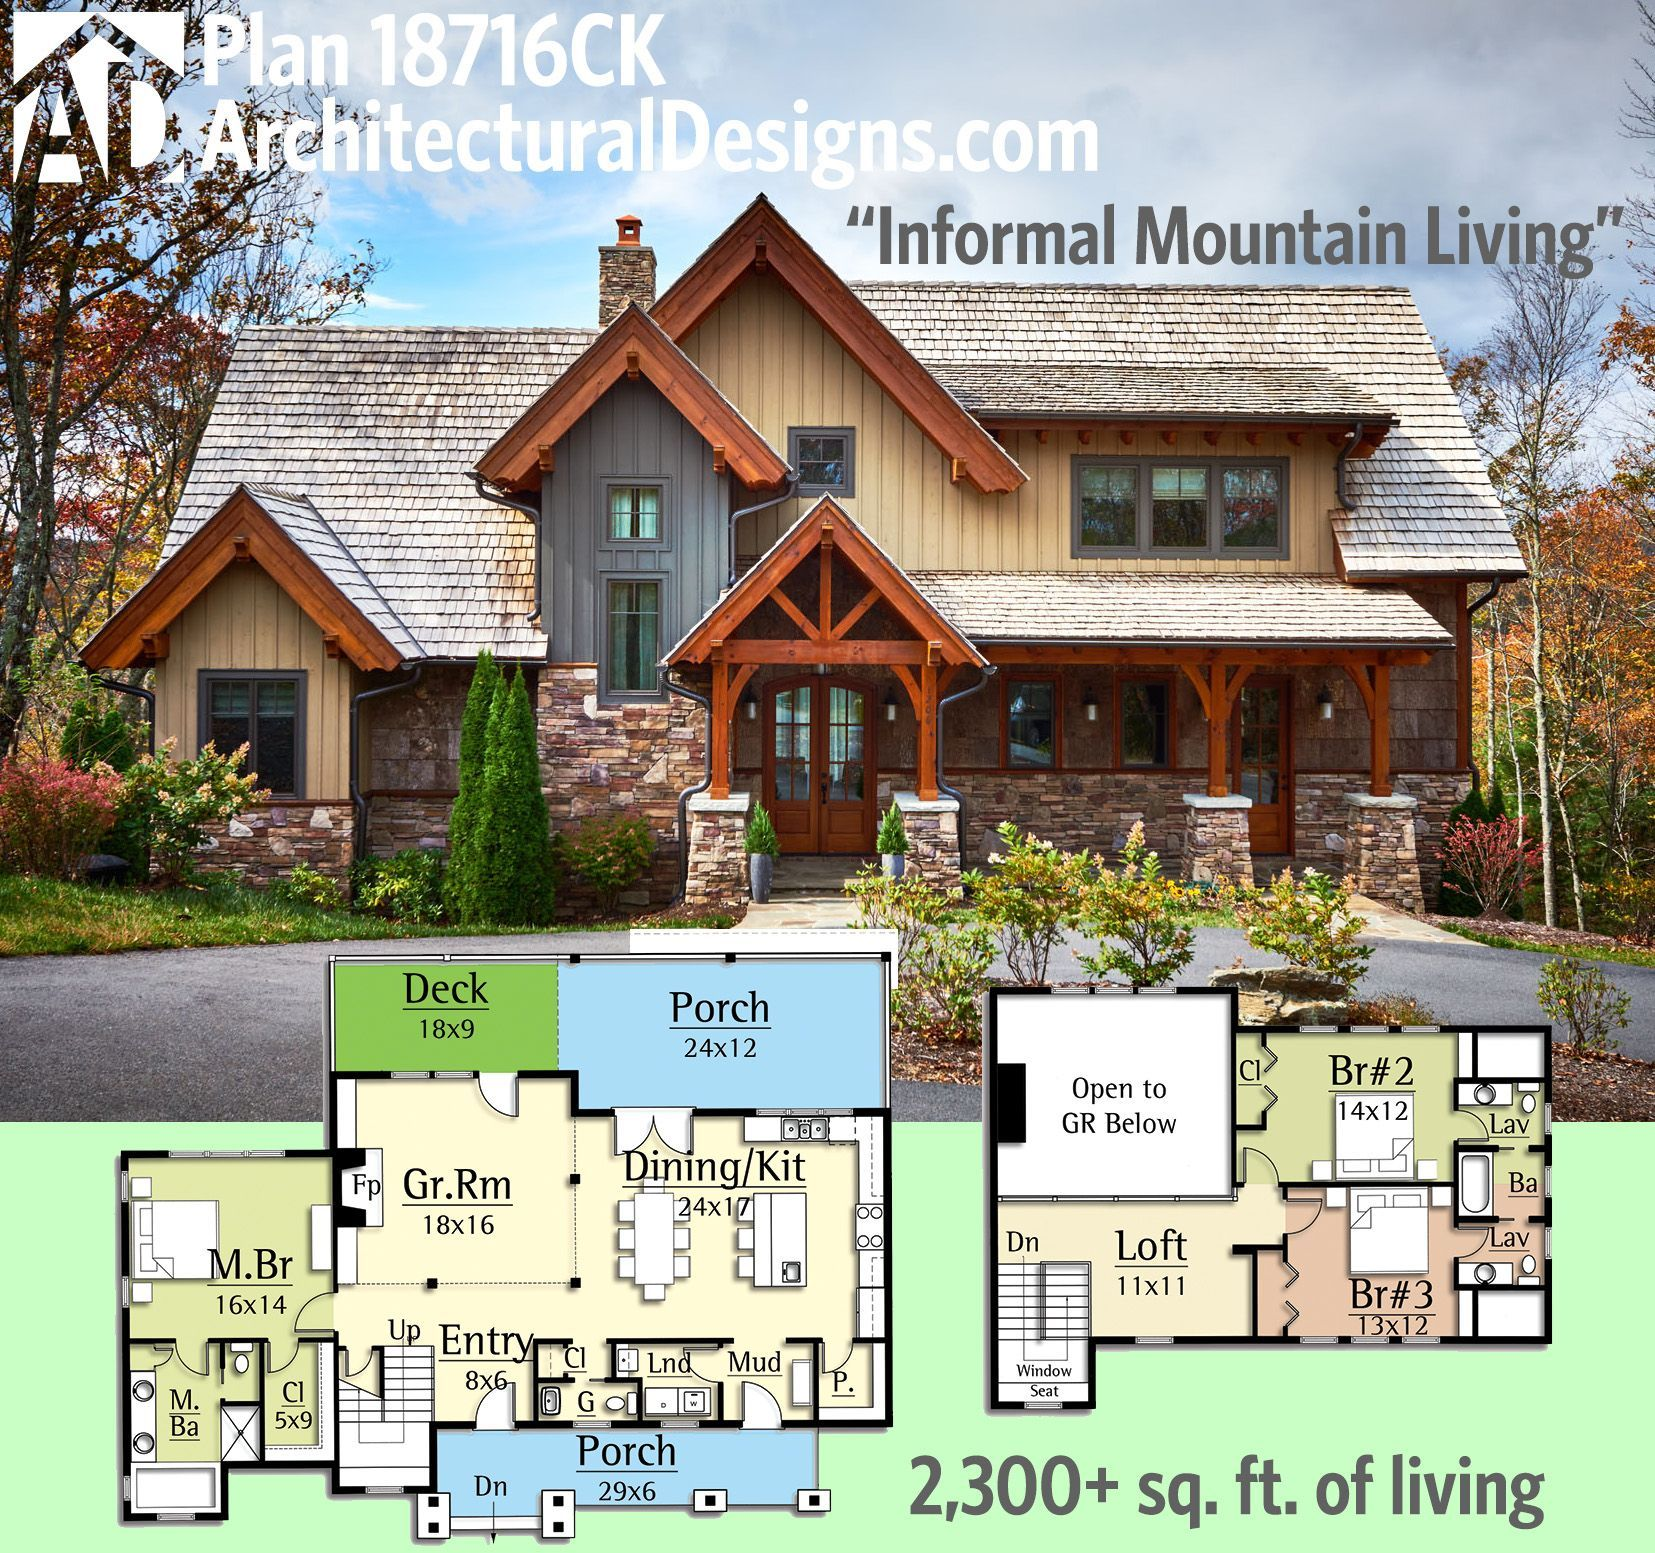 Architectural Designs Rugged House Plan 18716CK Gives You